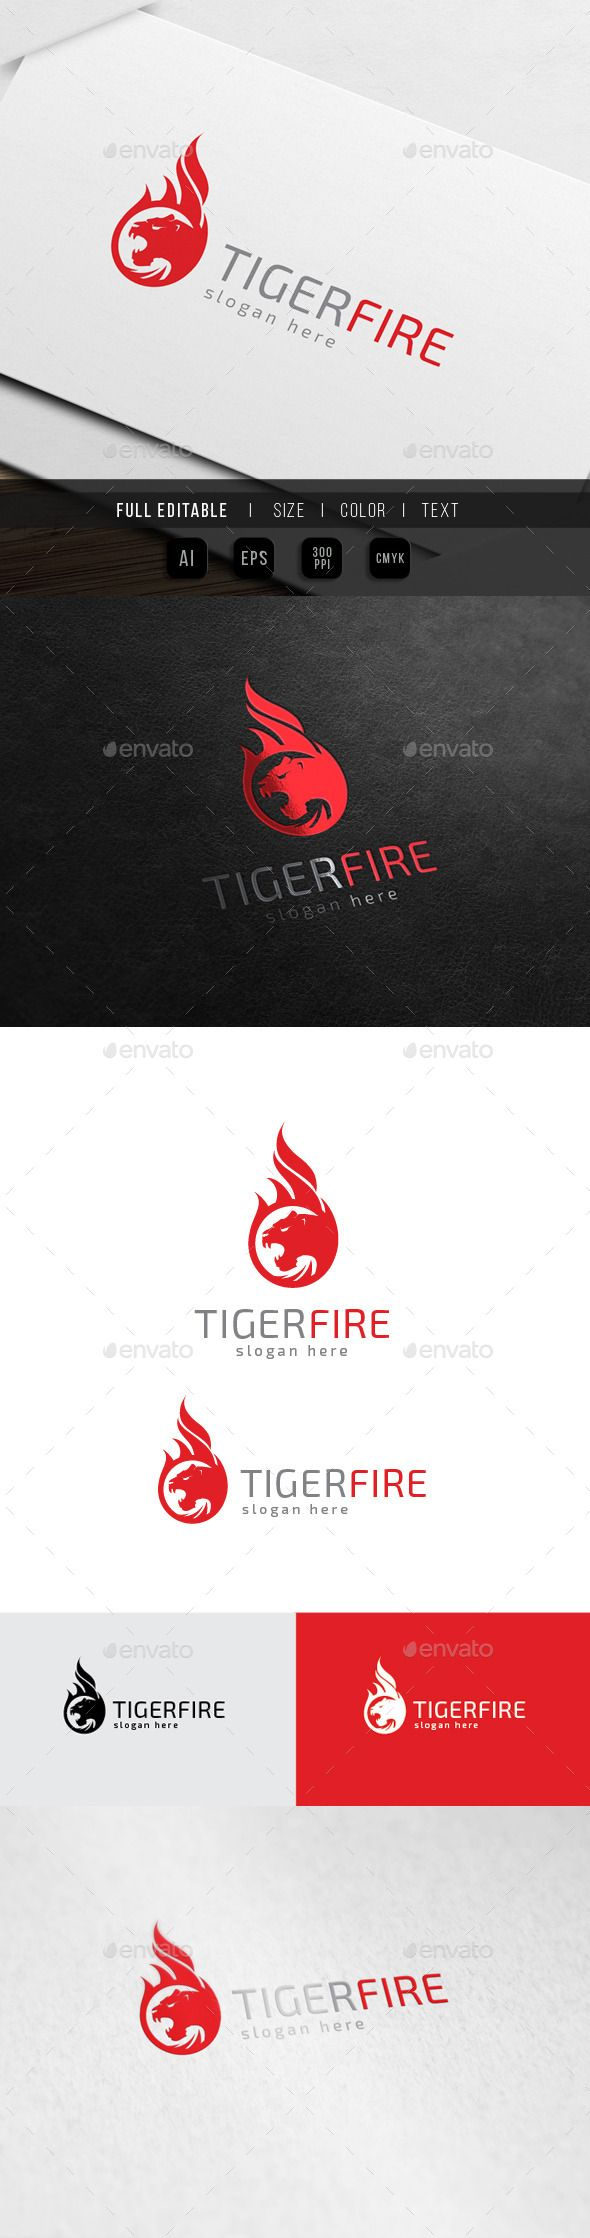 Tiger Fire  Panther Flame — Vector EPS #red #panther • Available here → https://graphicriver.net/item/tiger-fire-panther-flame/10369866?ref=pxcr